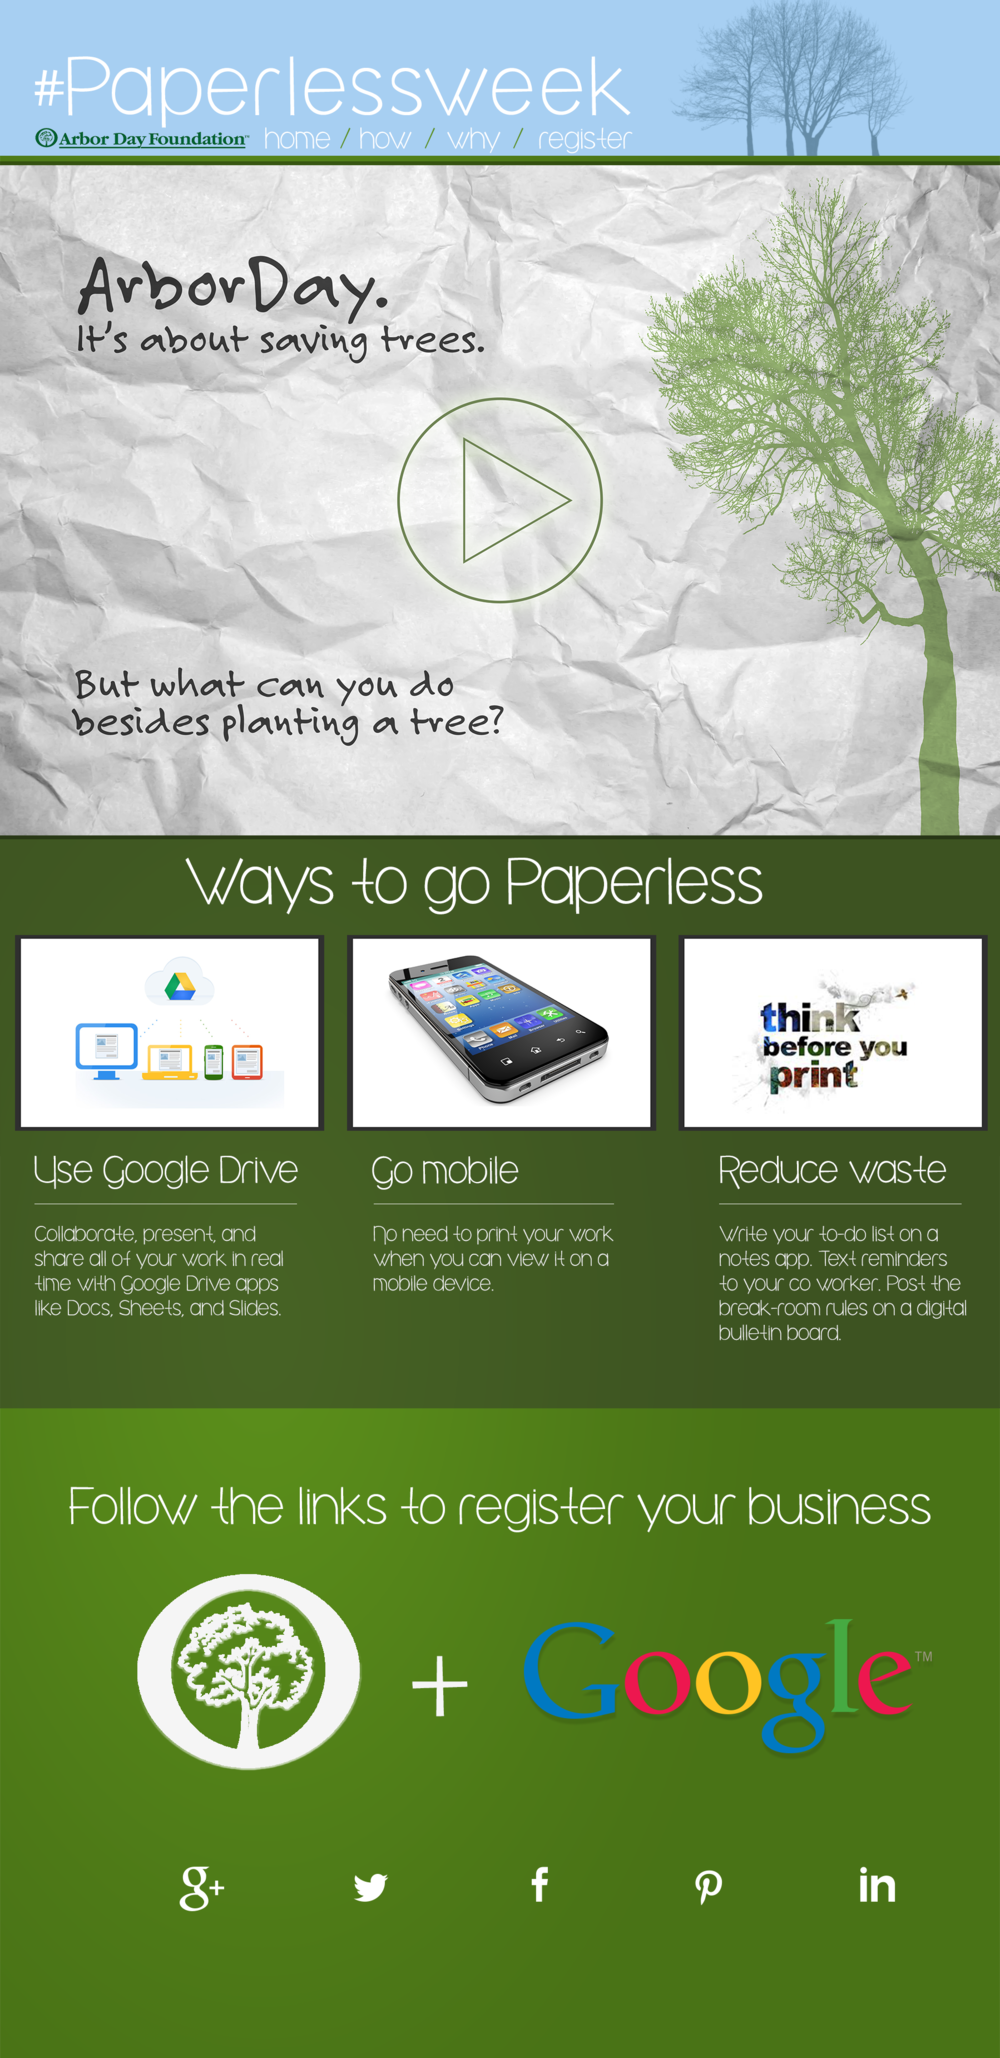 Homepage for the #paperlessweek campaign